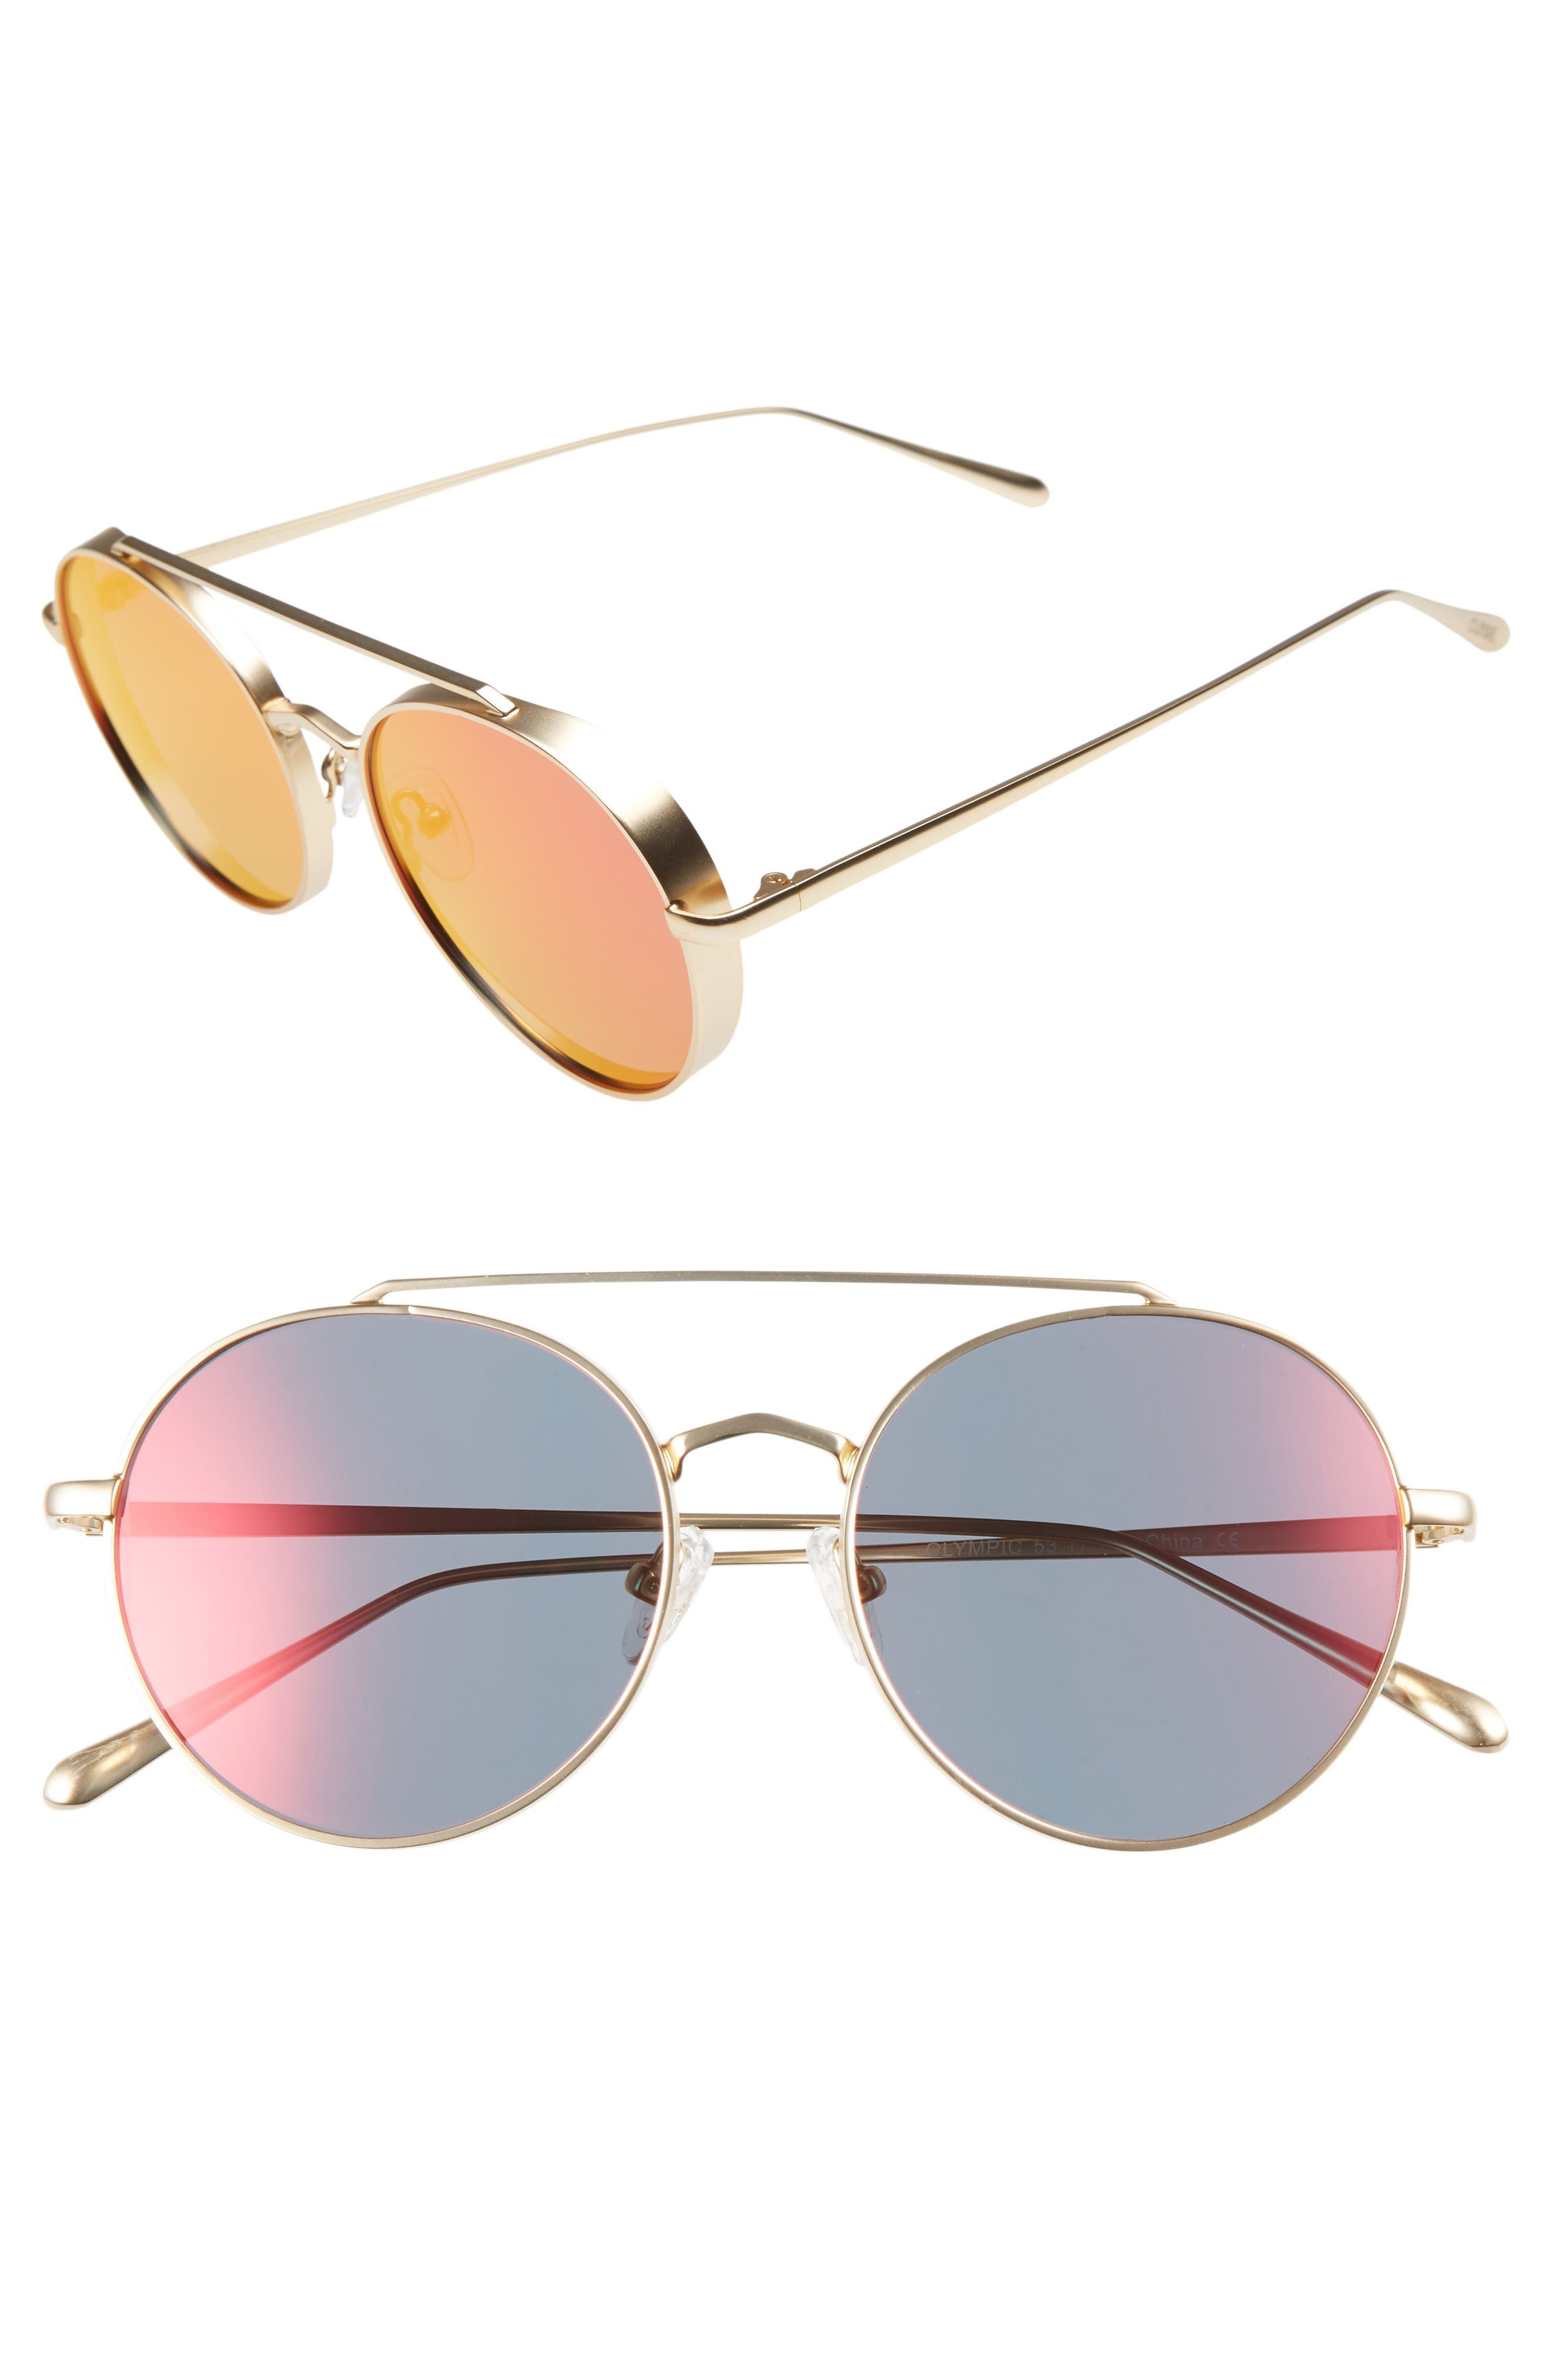 BONNIE CLYDE Olympic 53mm Polarized Aviator Sunglasses